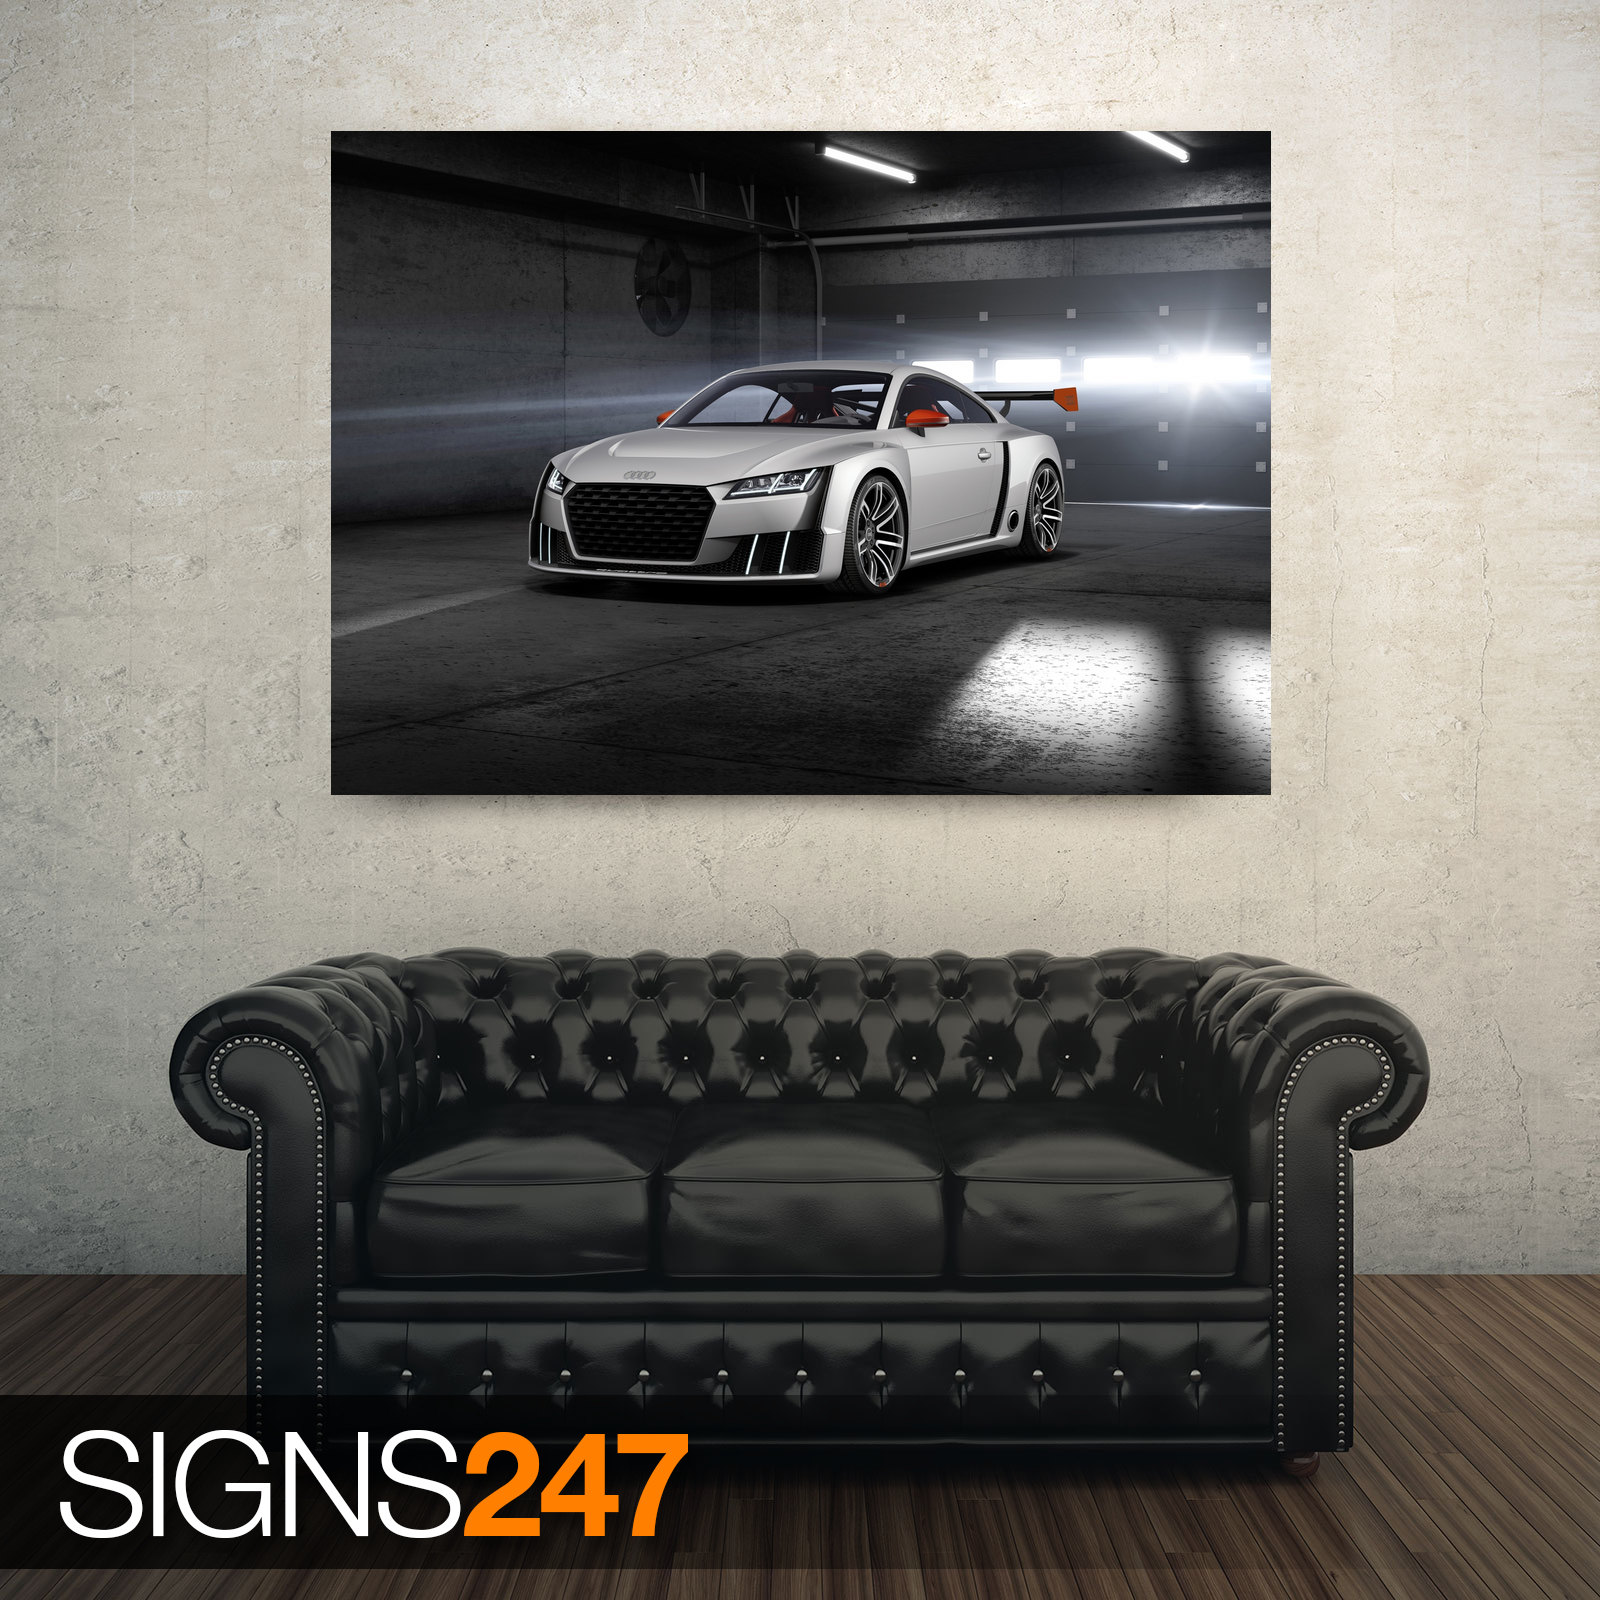 AUDI-TT-SPORTS-CAR-AD753-CAR-POSTER-Photo-Picture-Poster-Print-Art-A0-to-A4